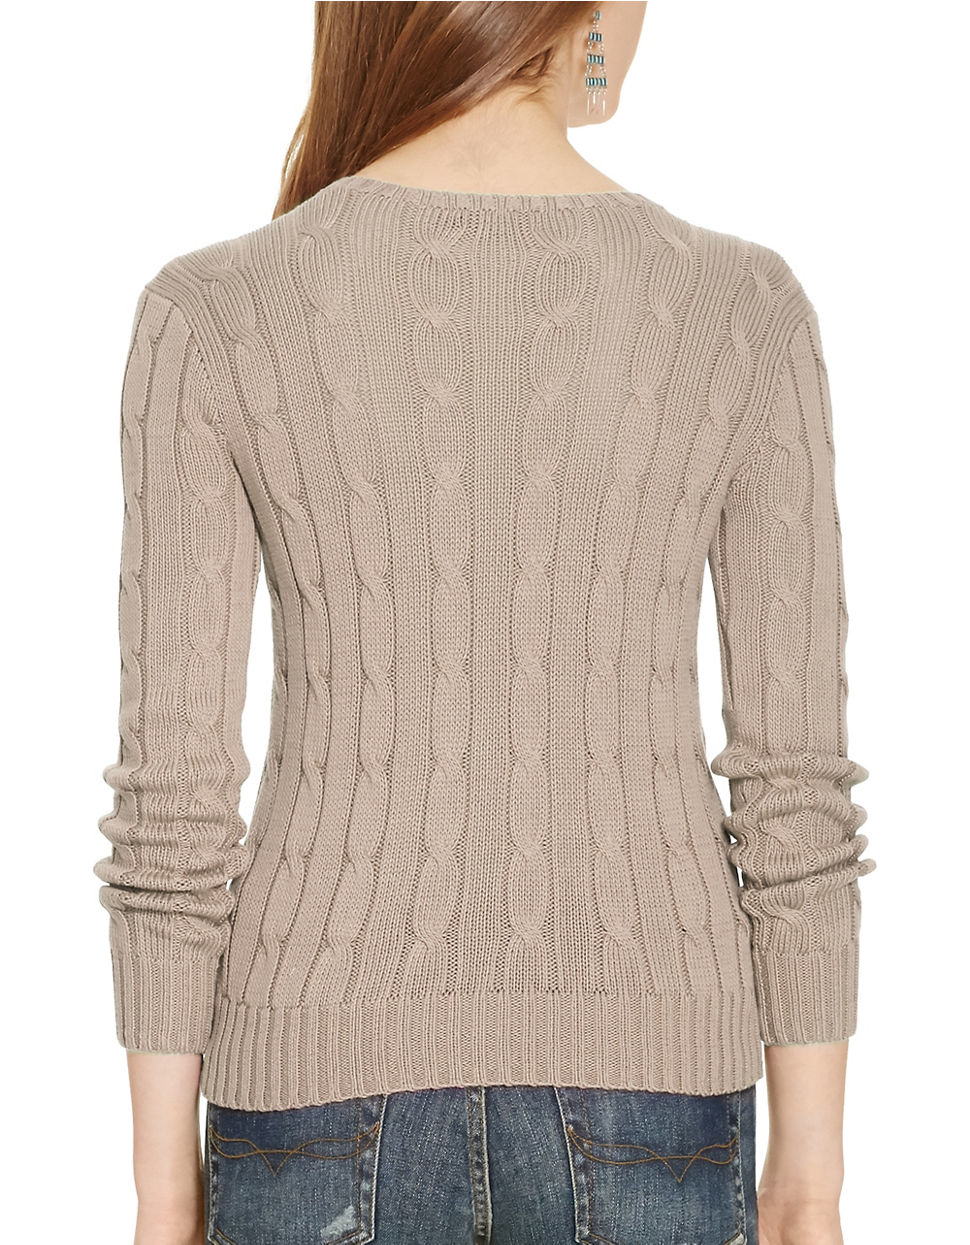 Polo Ralph Lauren Women S Natural Cotton Cable Knit Sweater